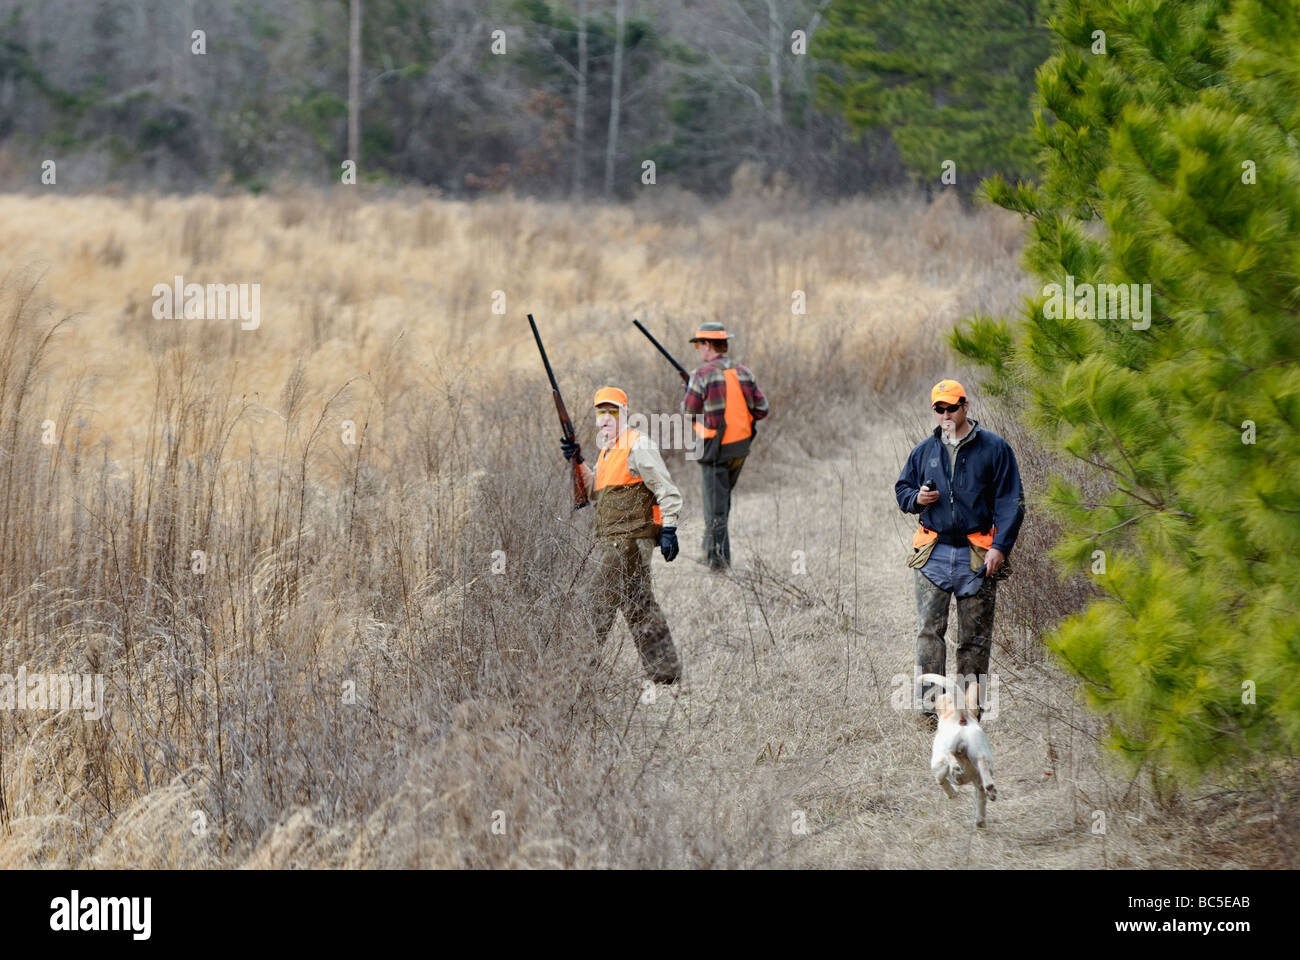 Upland Bird Hunters Guide and English Pointer in Field at Buckeye Plantation in the Piney Woods of Georgia - Stock Image